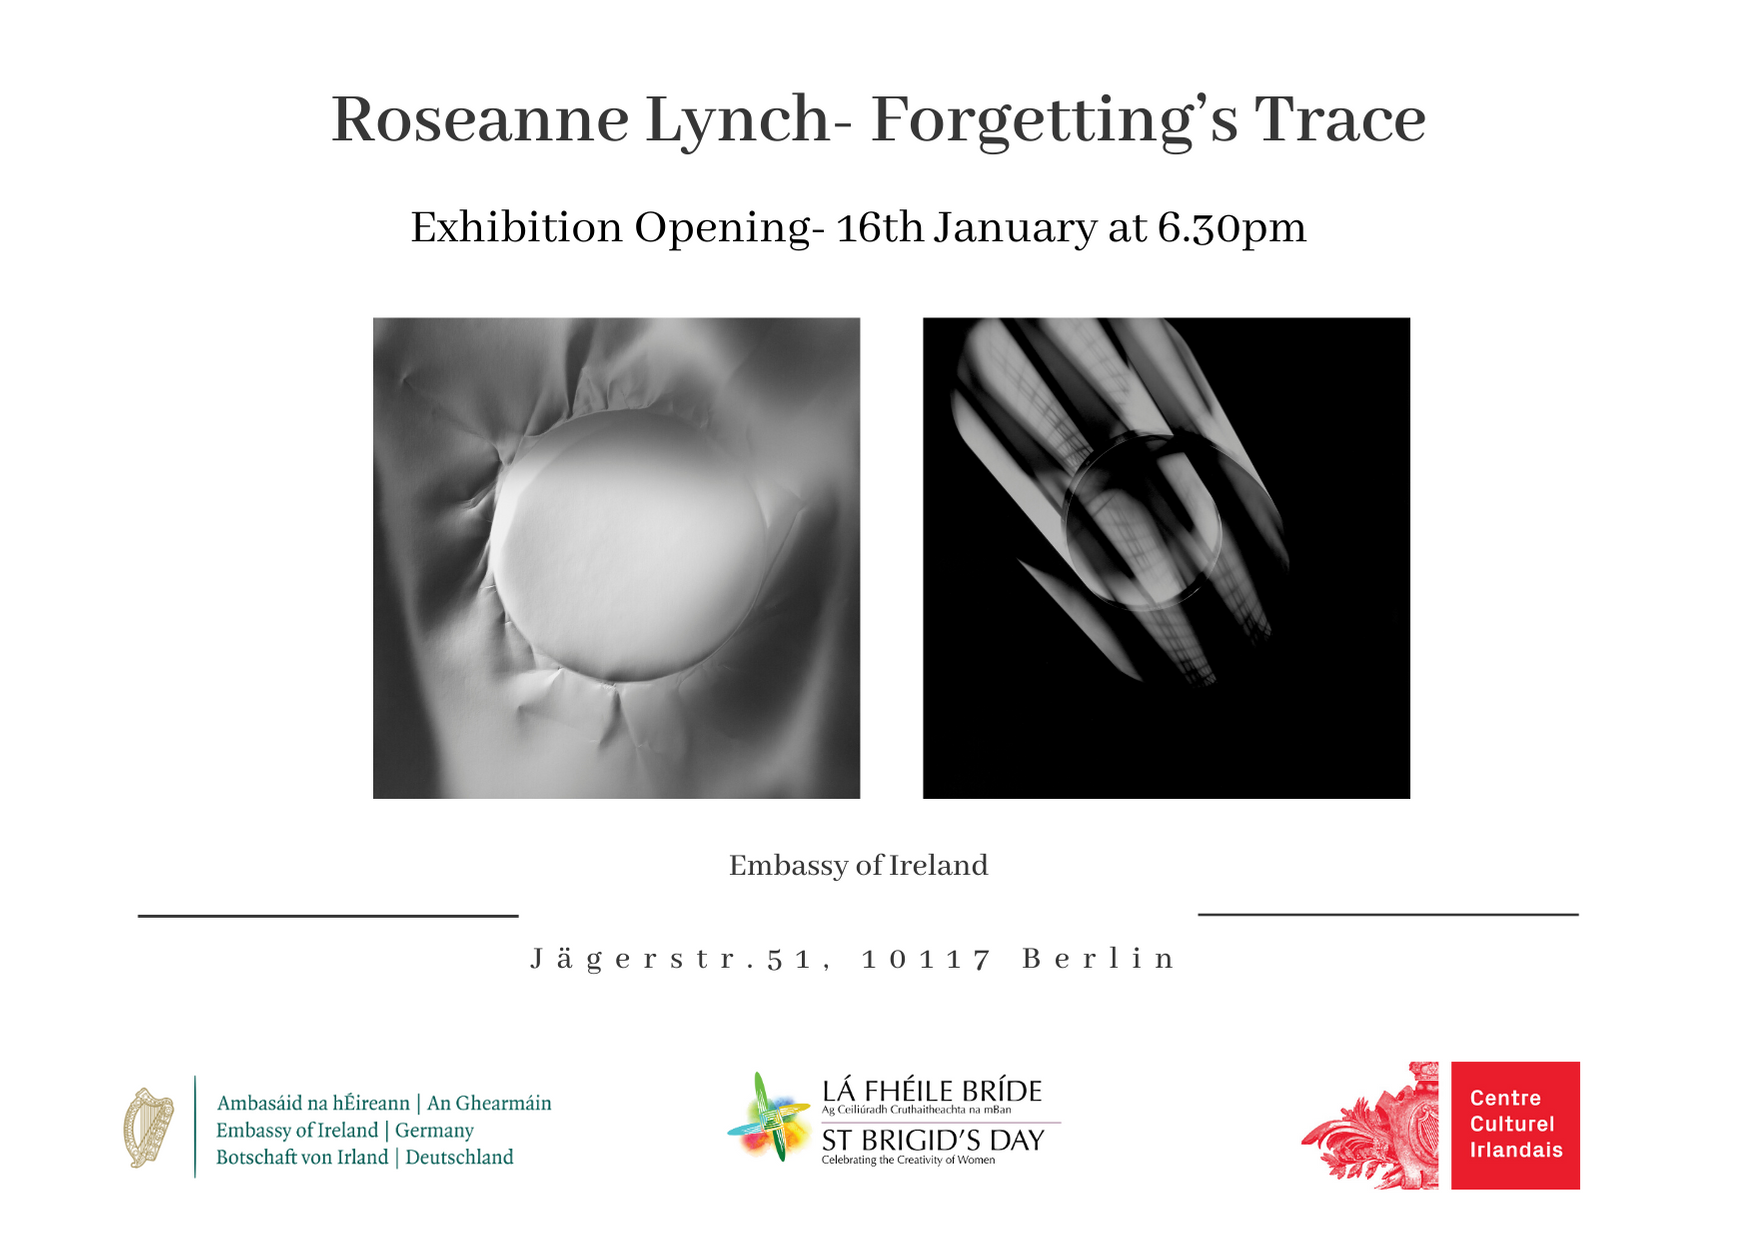 Roseanne Lynch- Forgetting's Trace